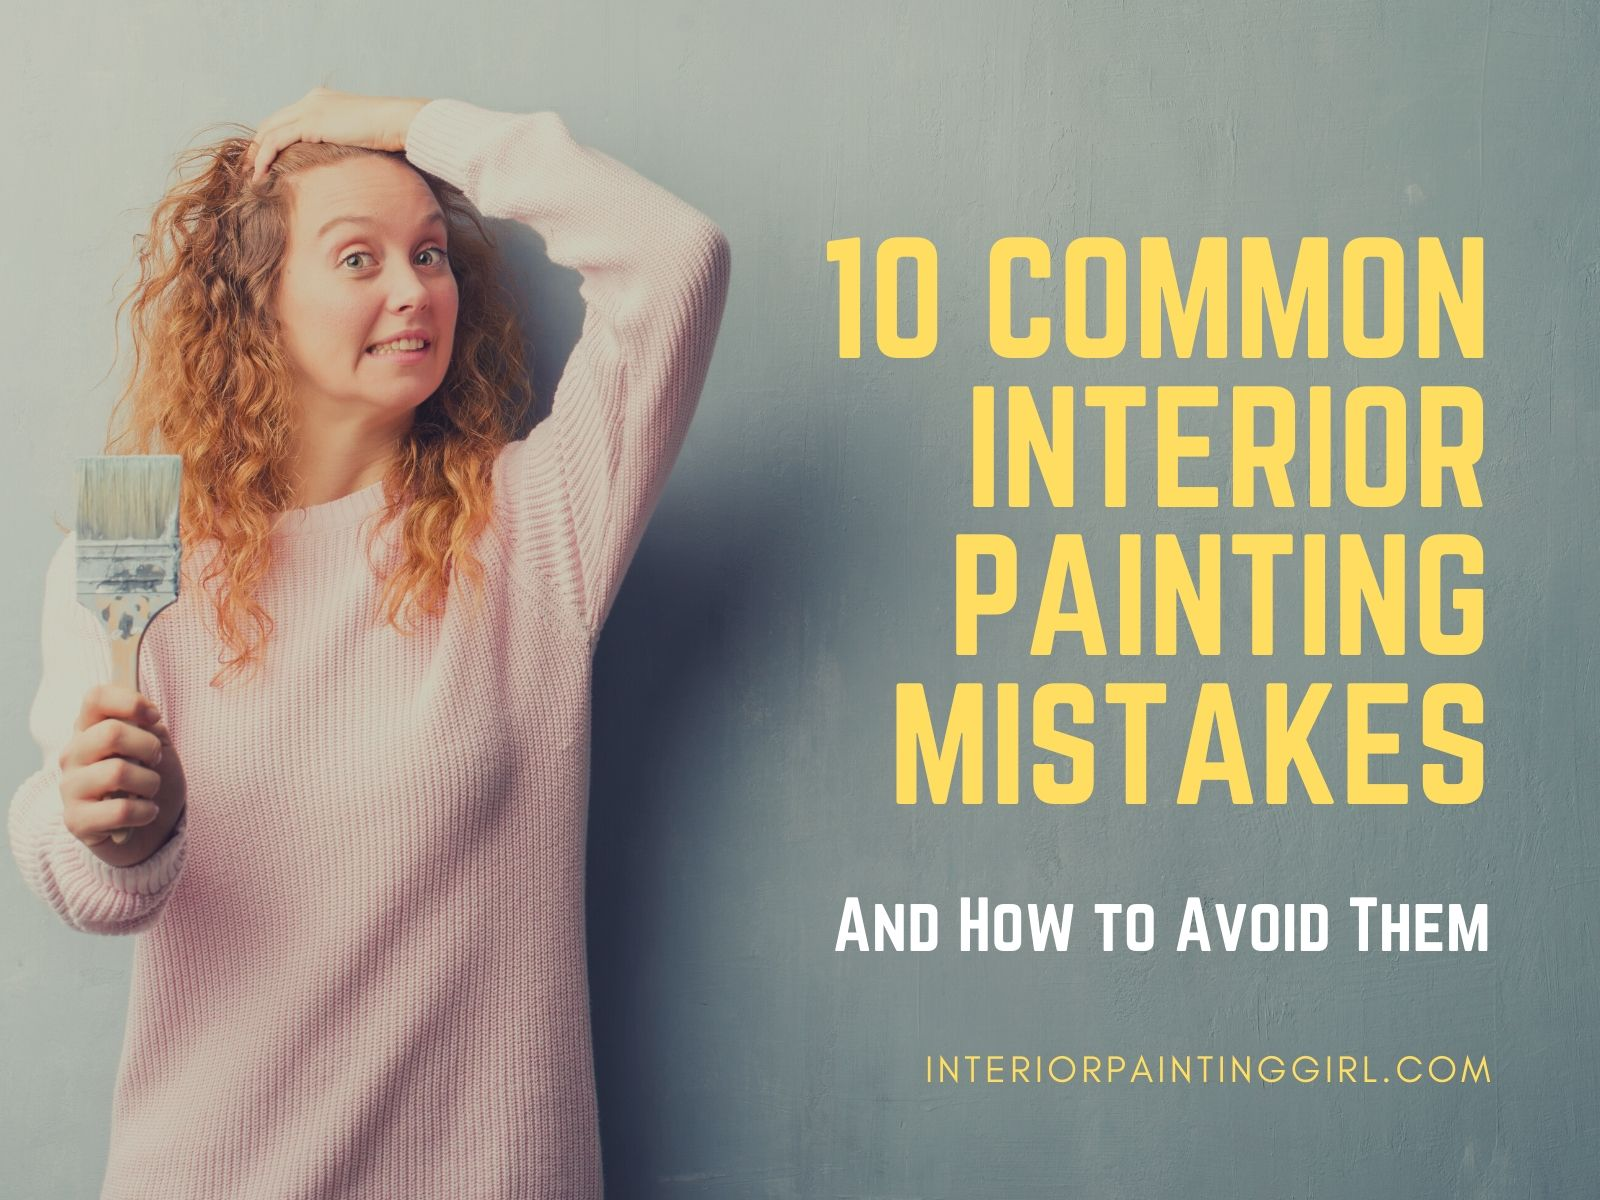 Ten Common Interior Painting Mistakes and How to Avoid Them! - THAT Interior Painting Girl